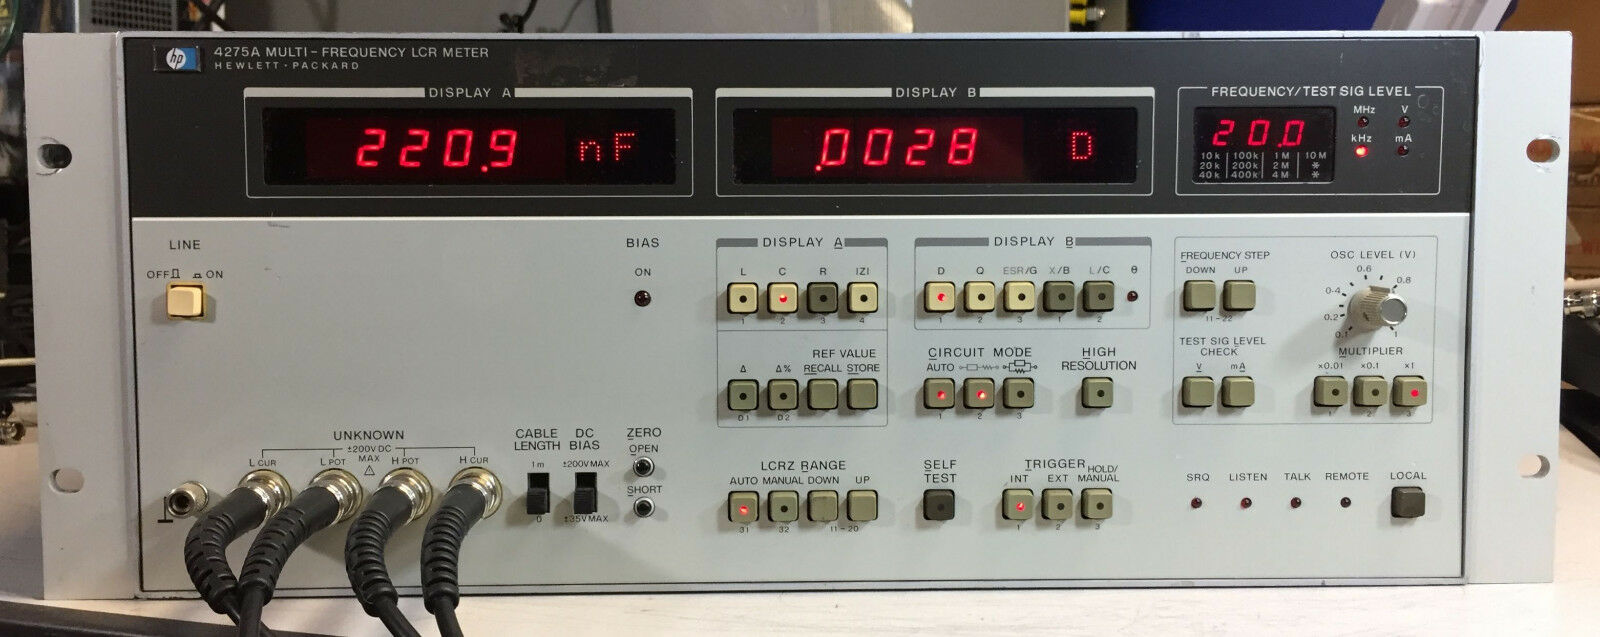 Hp Agilent 4275a Multi Frequency Lcr Meter 89999 Picclick Lc Based On Pic16f84a 1 Of 9 See More